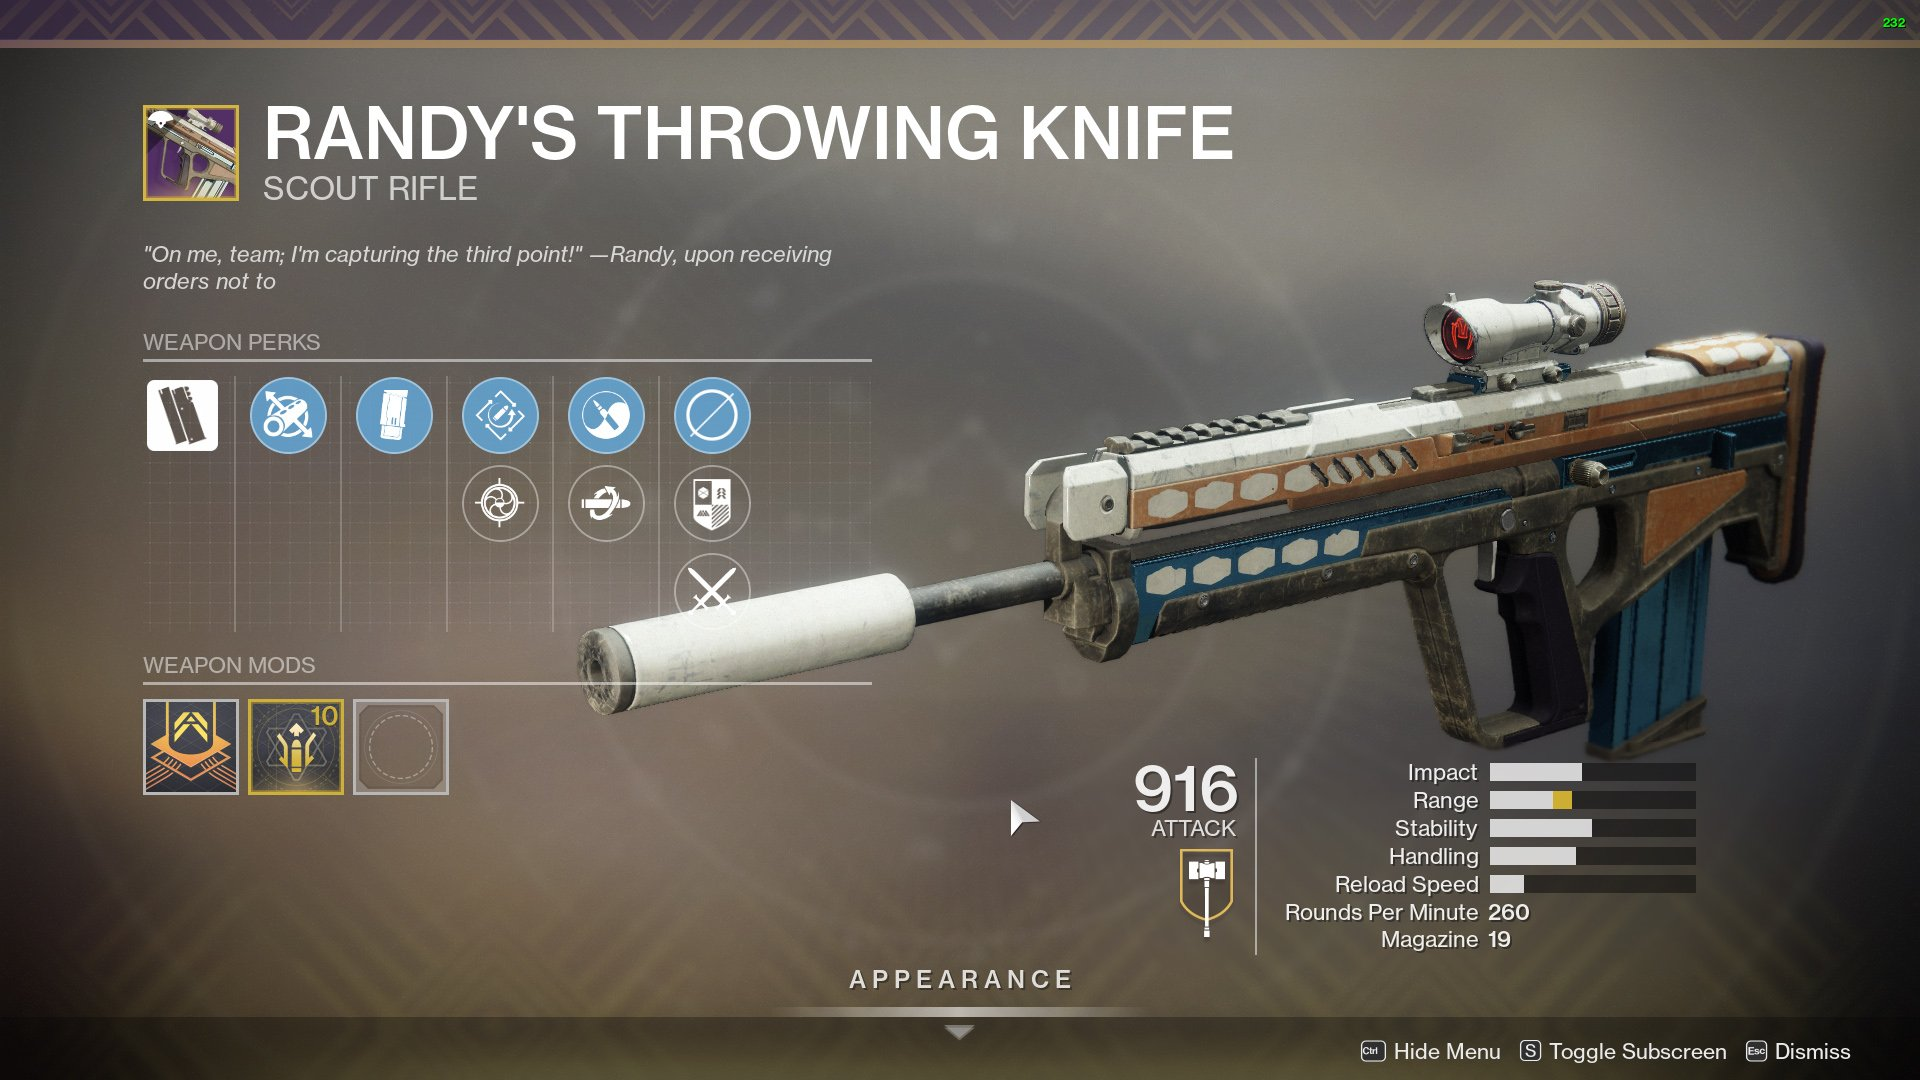 Destiny 2 Randy's Throwing Knife